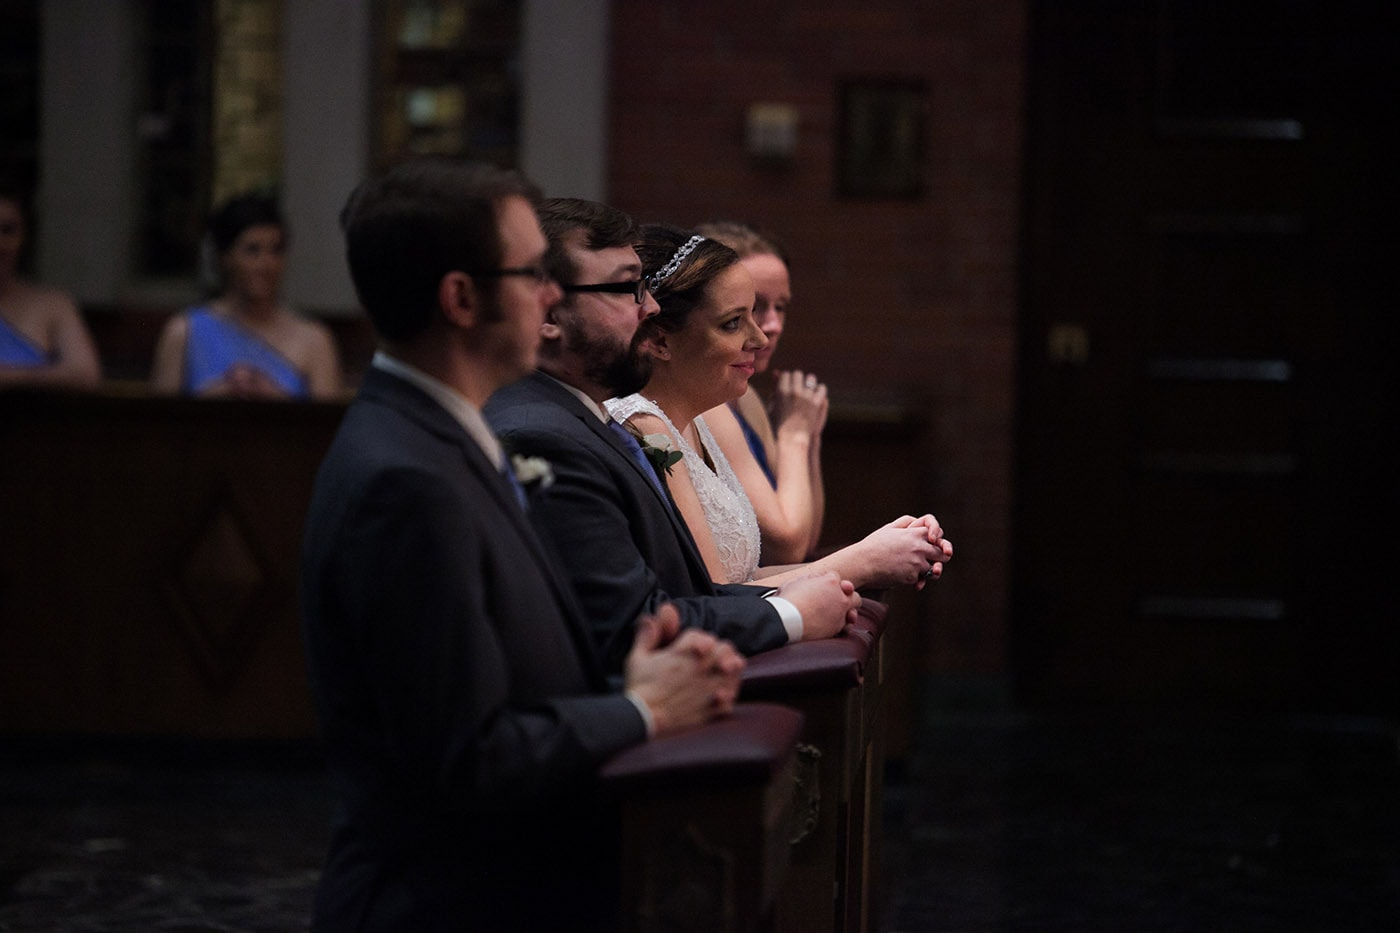 Heather and Jeremy were married atSt. Lambert's Catholic Church in Skokie, IL with a reception atLakeview Room in Glenview, Illinois.